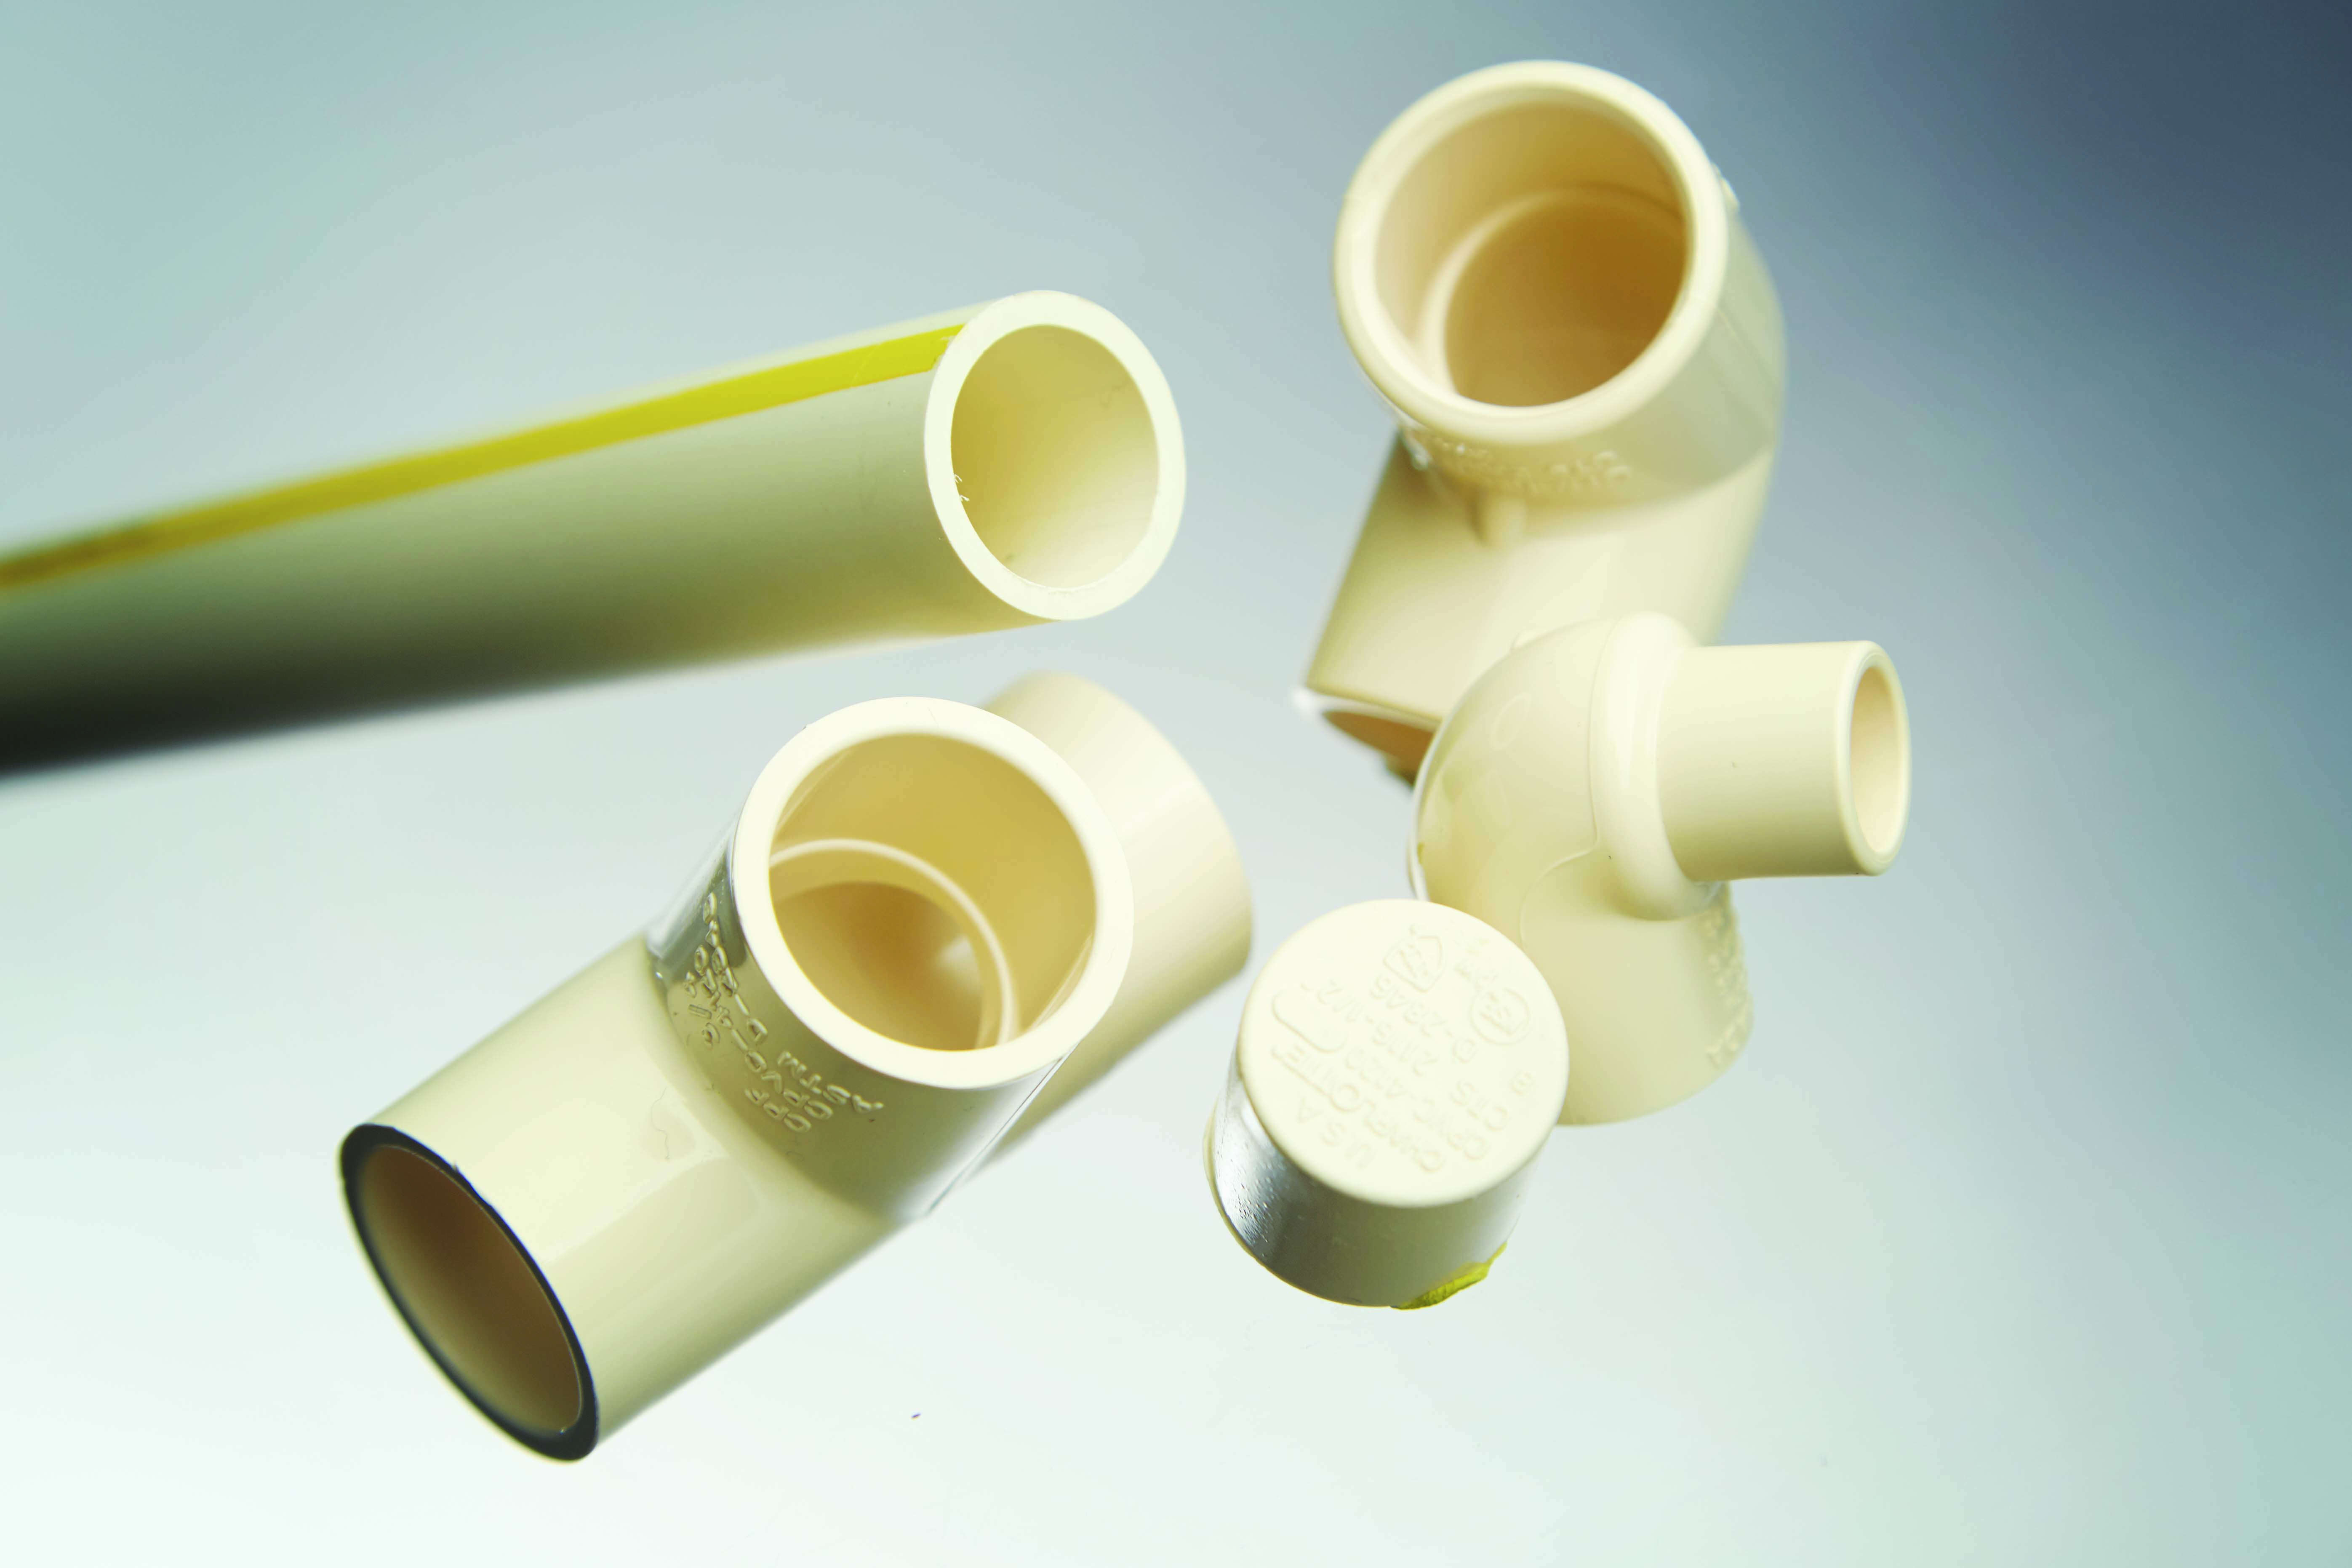 CPVC or PVC: Make the Right Choice for Plumbing Repairs